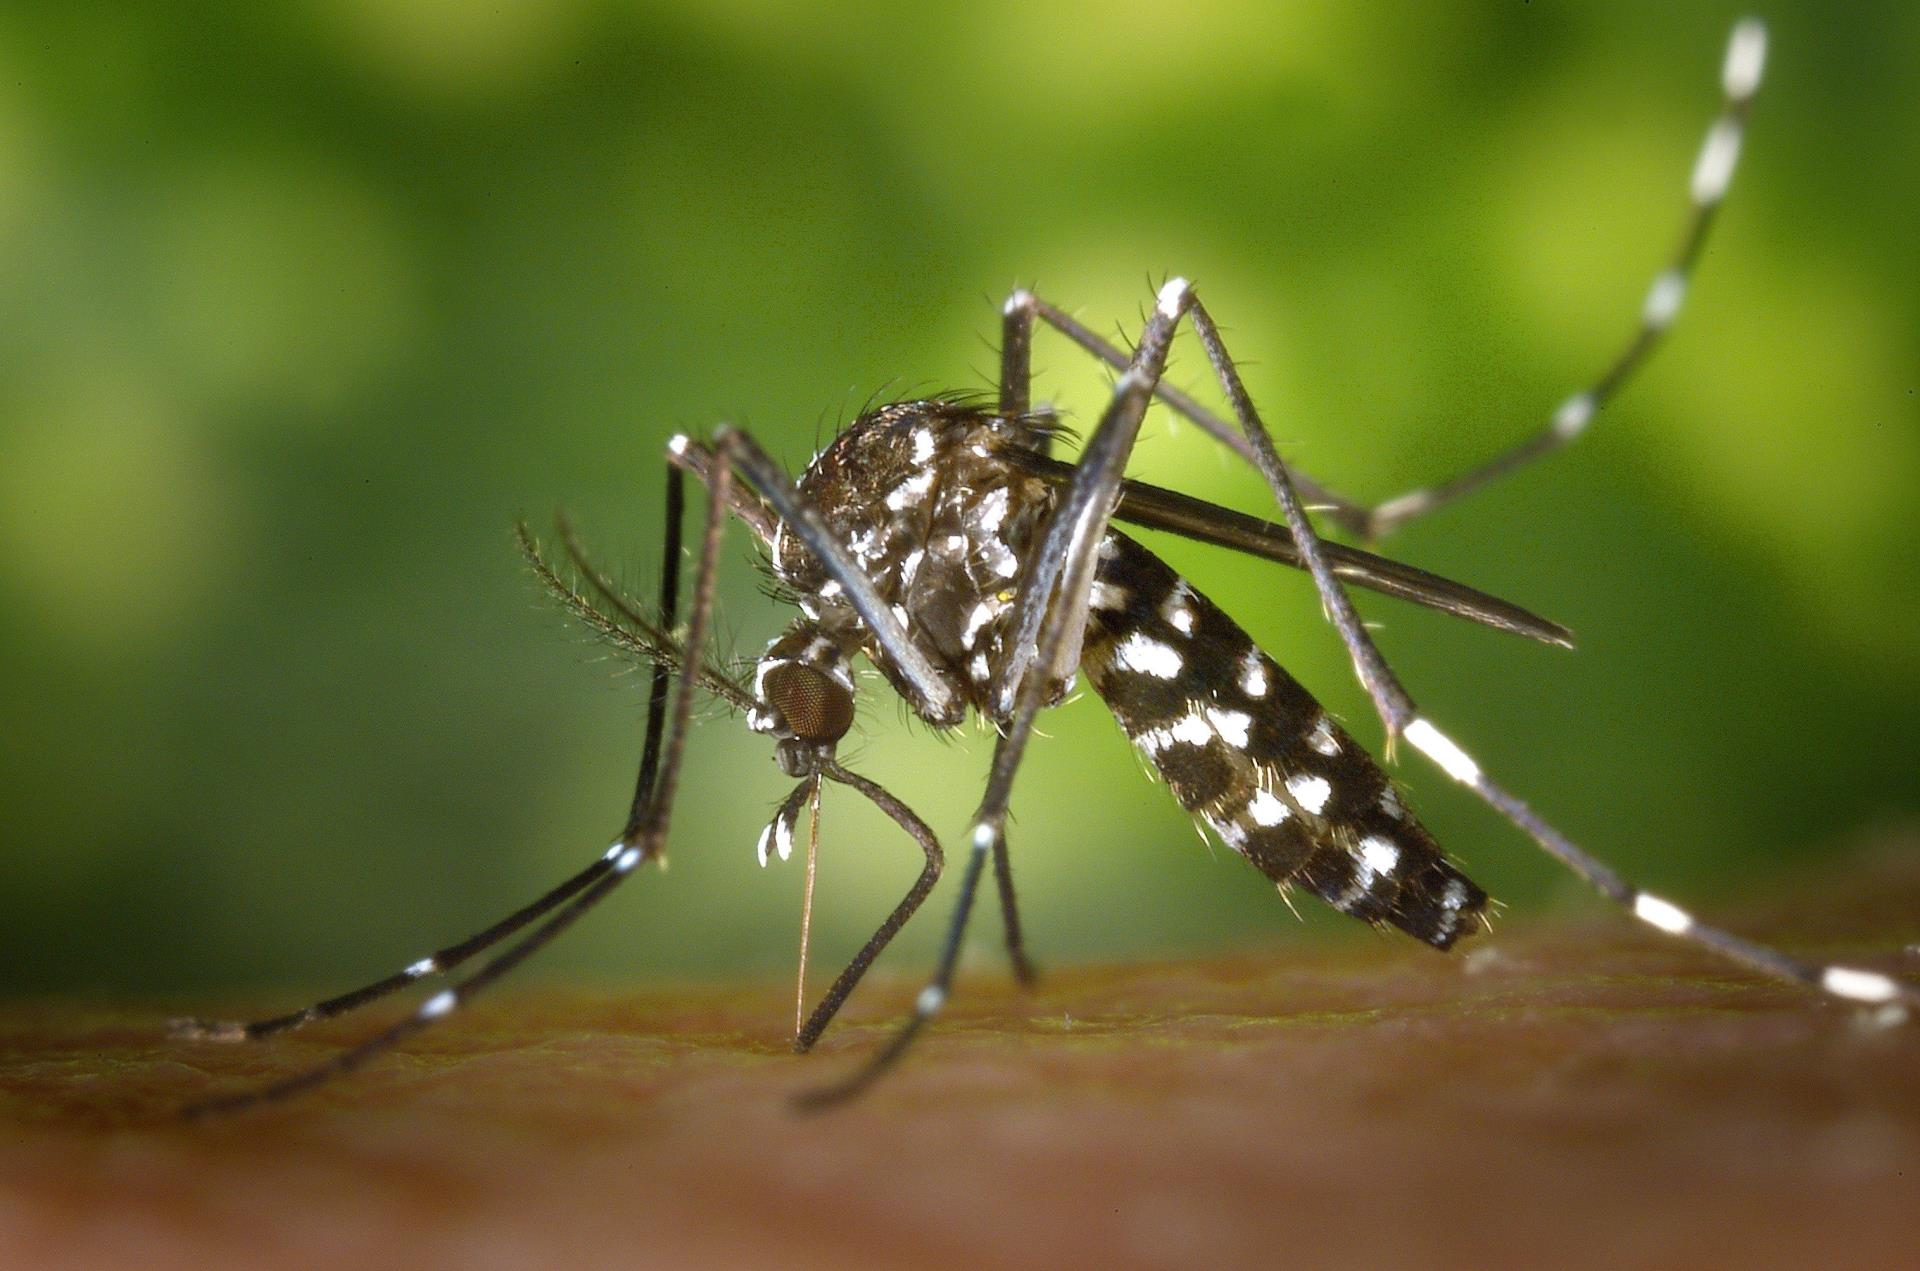 Pilbara and Kimberley warned of increased Murray Valley Encephalitis